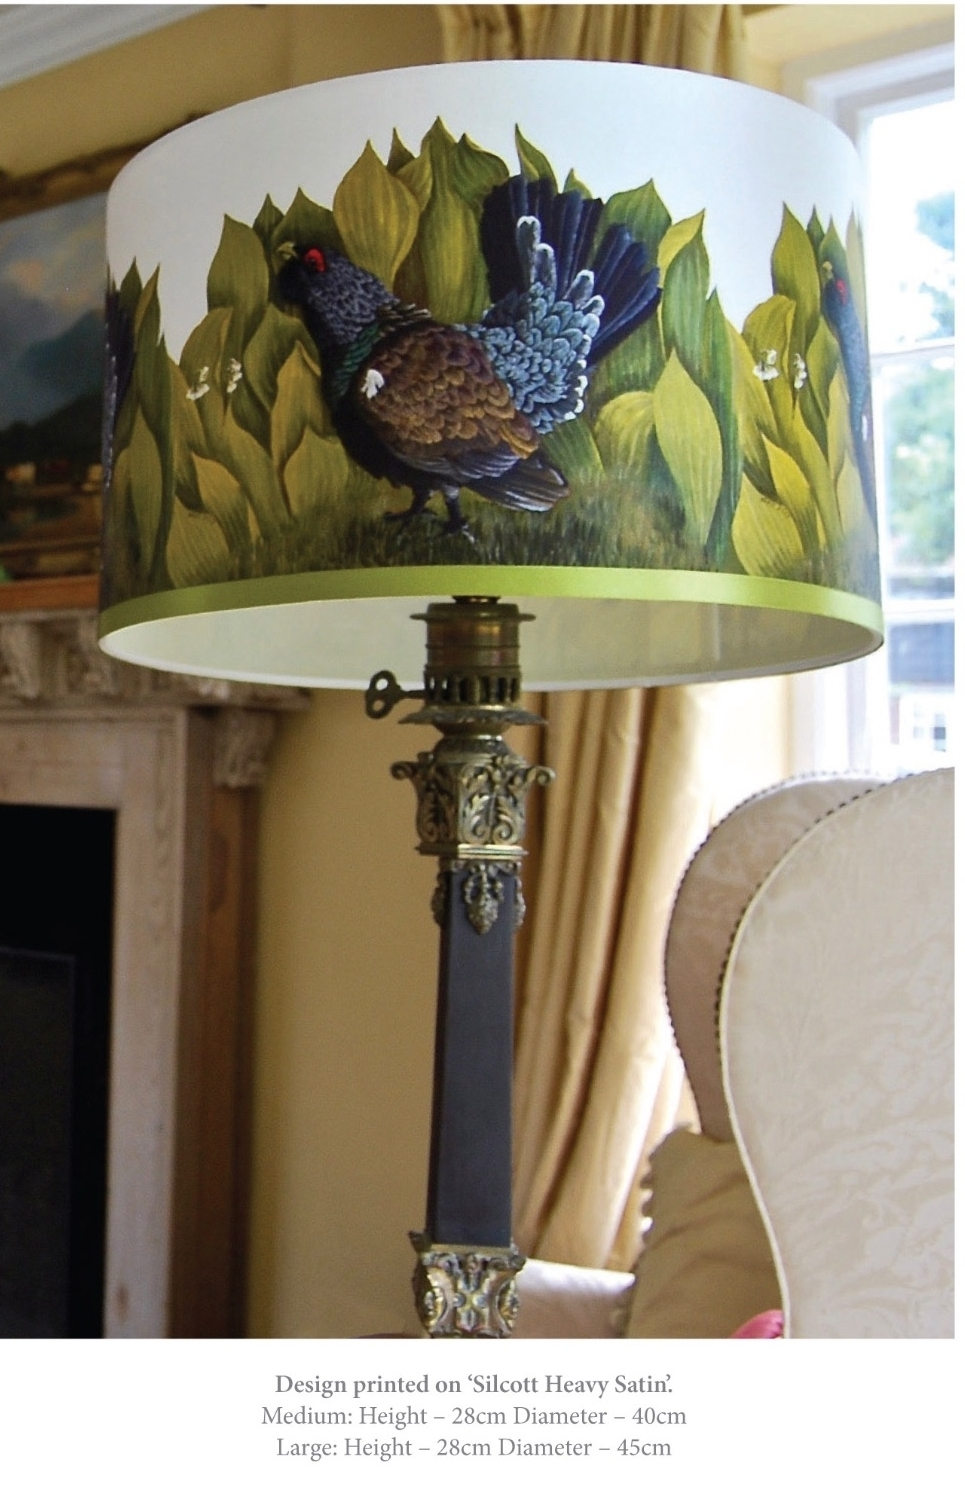 capercaillie lampshade